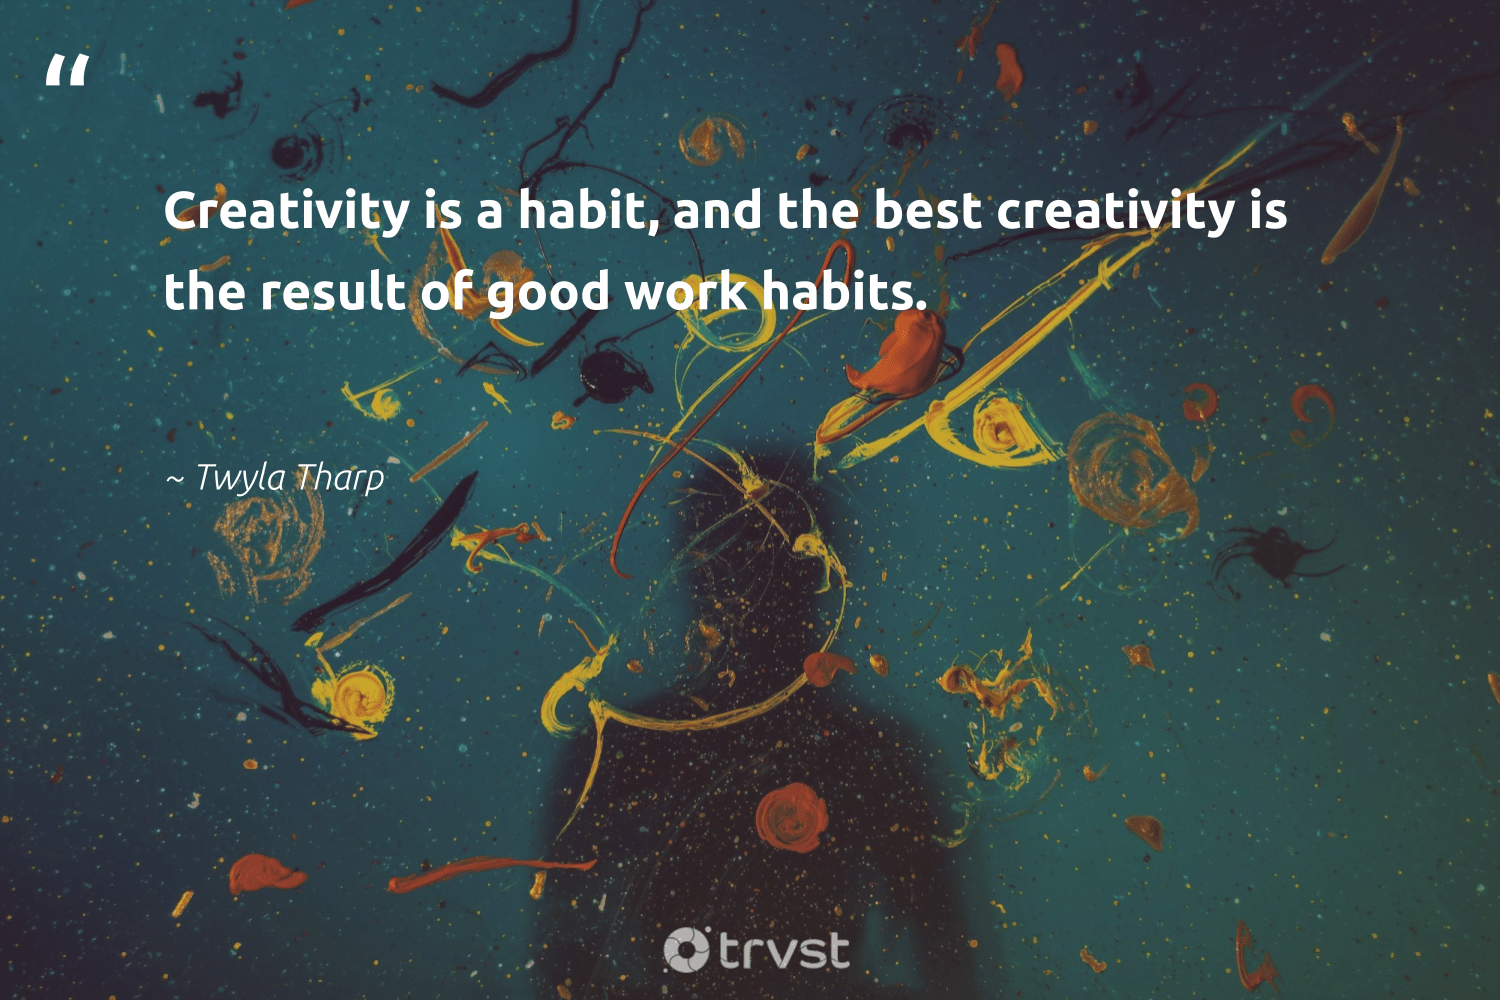 """Creativity is a habit, and the best creativity is the result of good work habits.""  - Twyla Tharp #trvst #quotes #creativity #creative #nevergiveup #begreat #planetearthfirst #sketchbook #futureofwork #softskills #dogood #design"